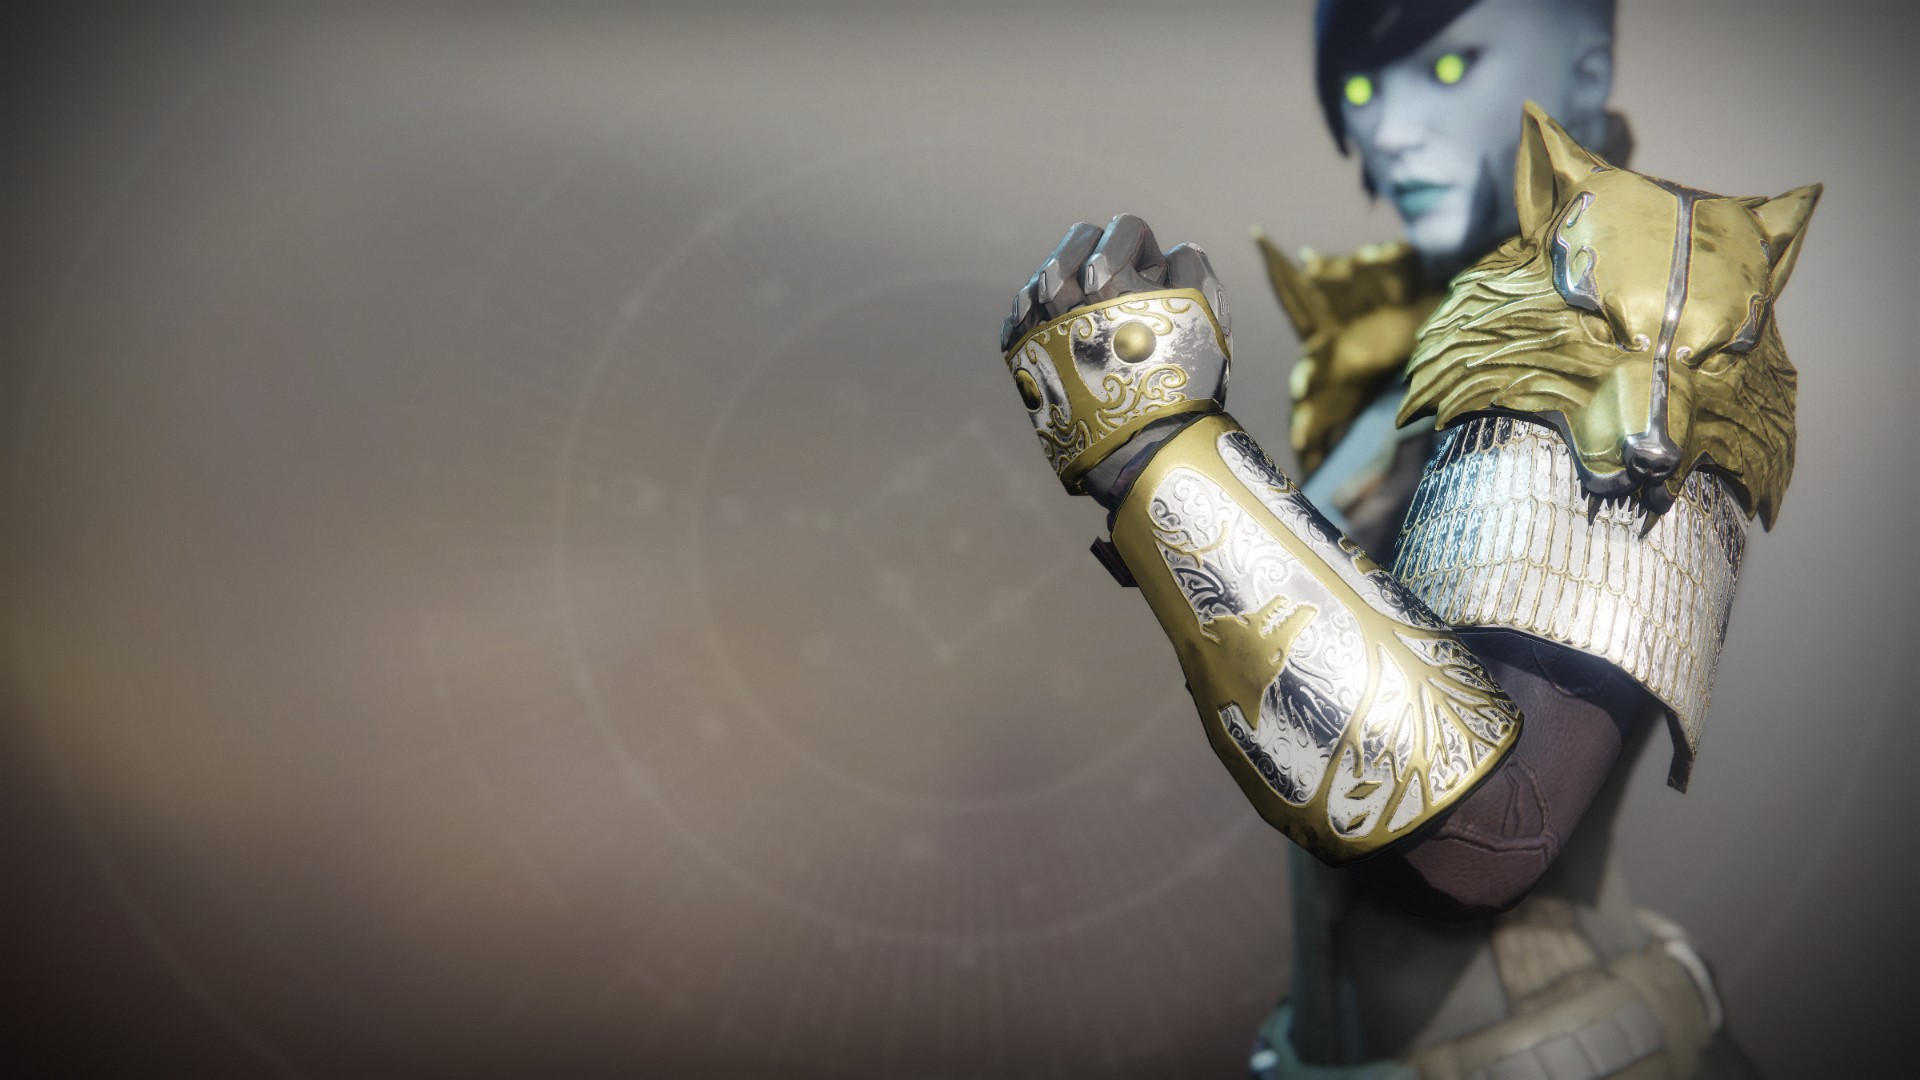 An in-game render of the Iron Truage Gauntlets.